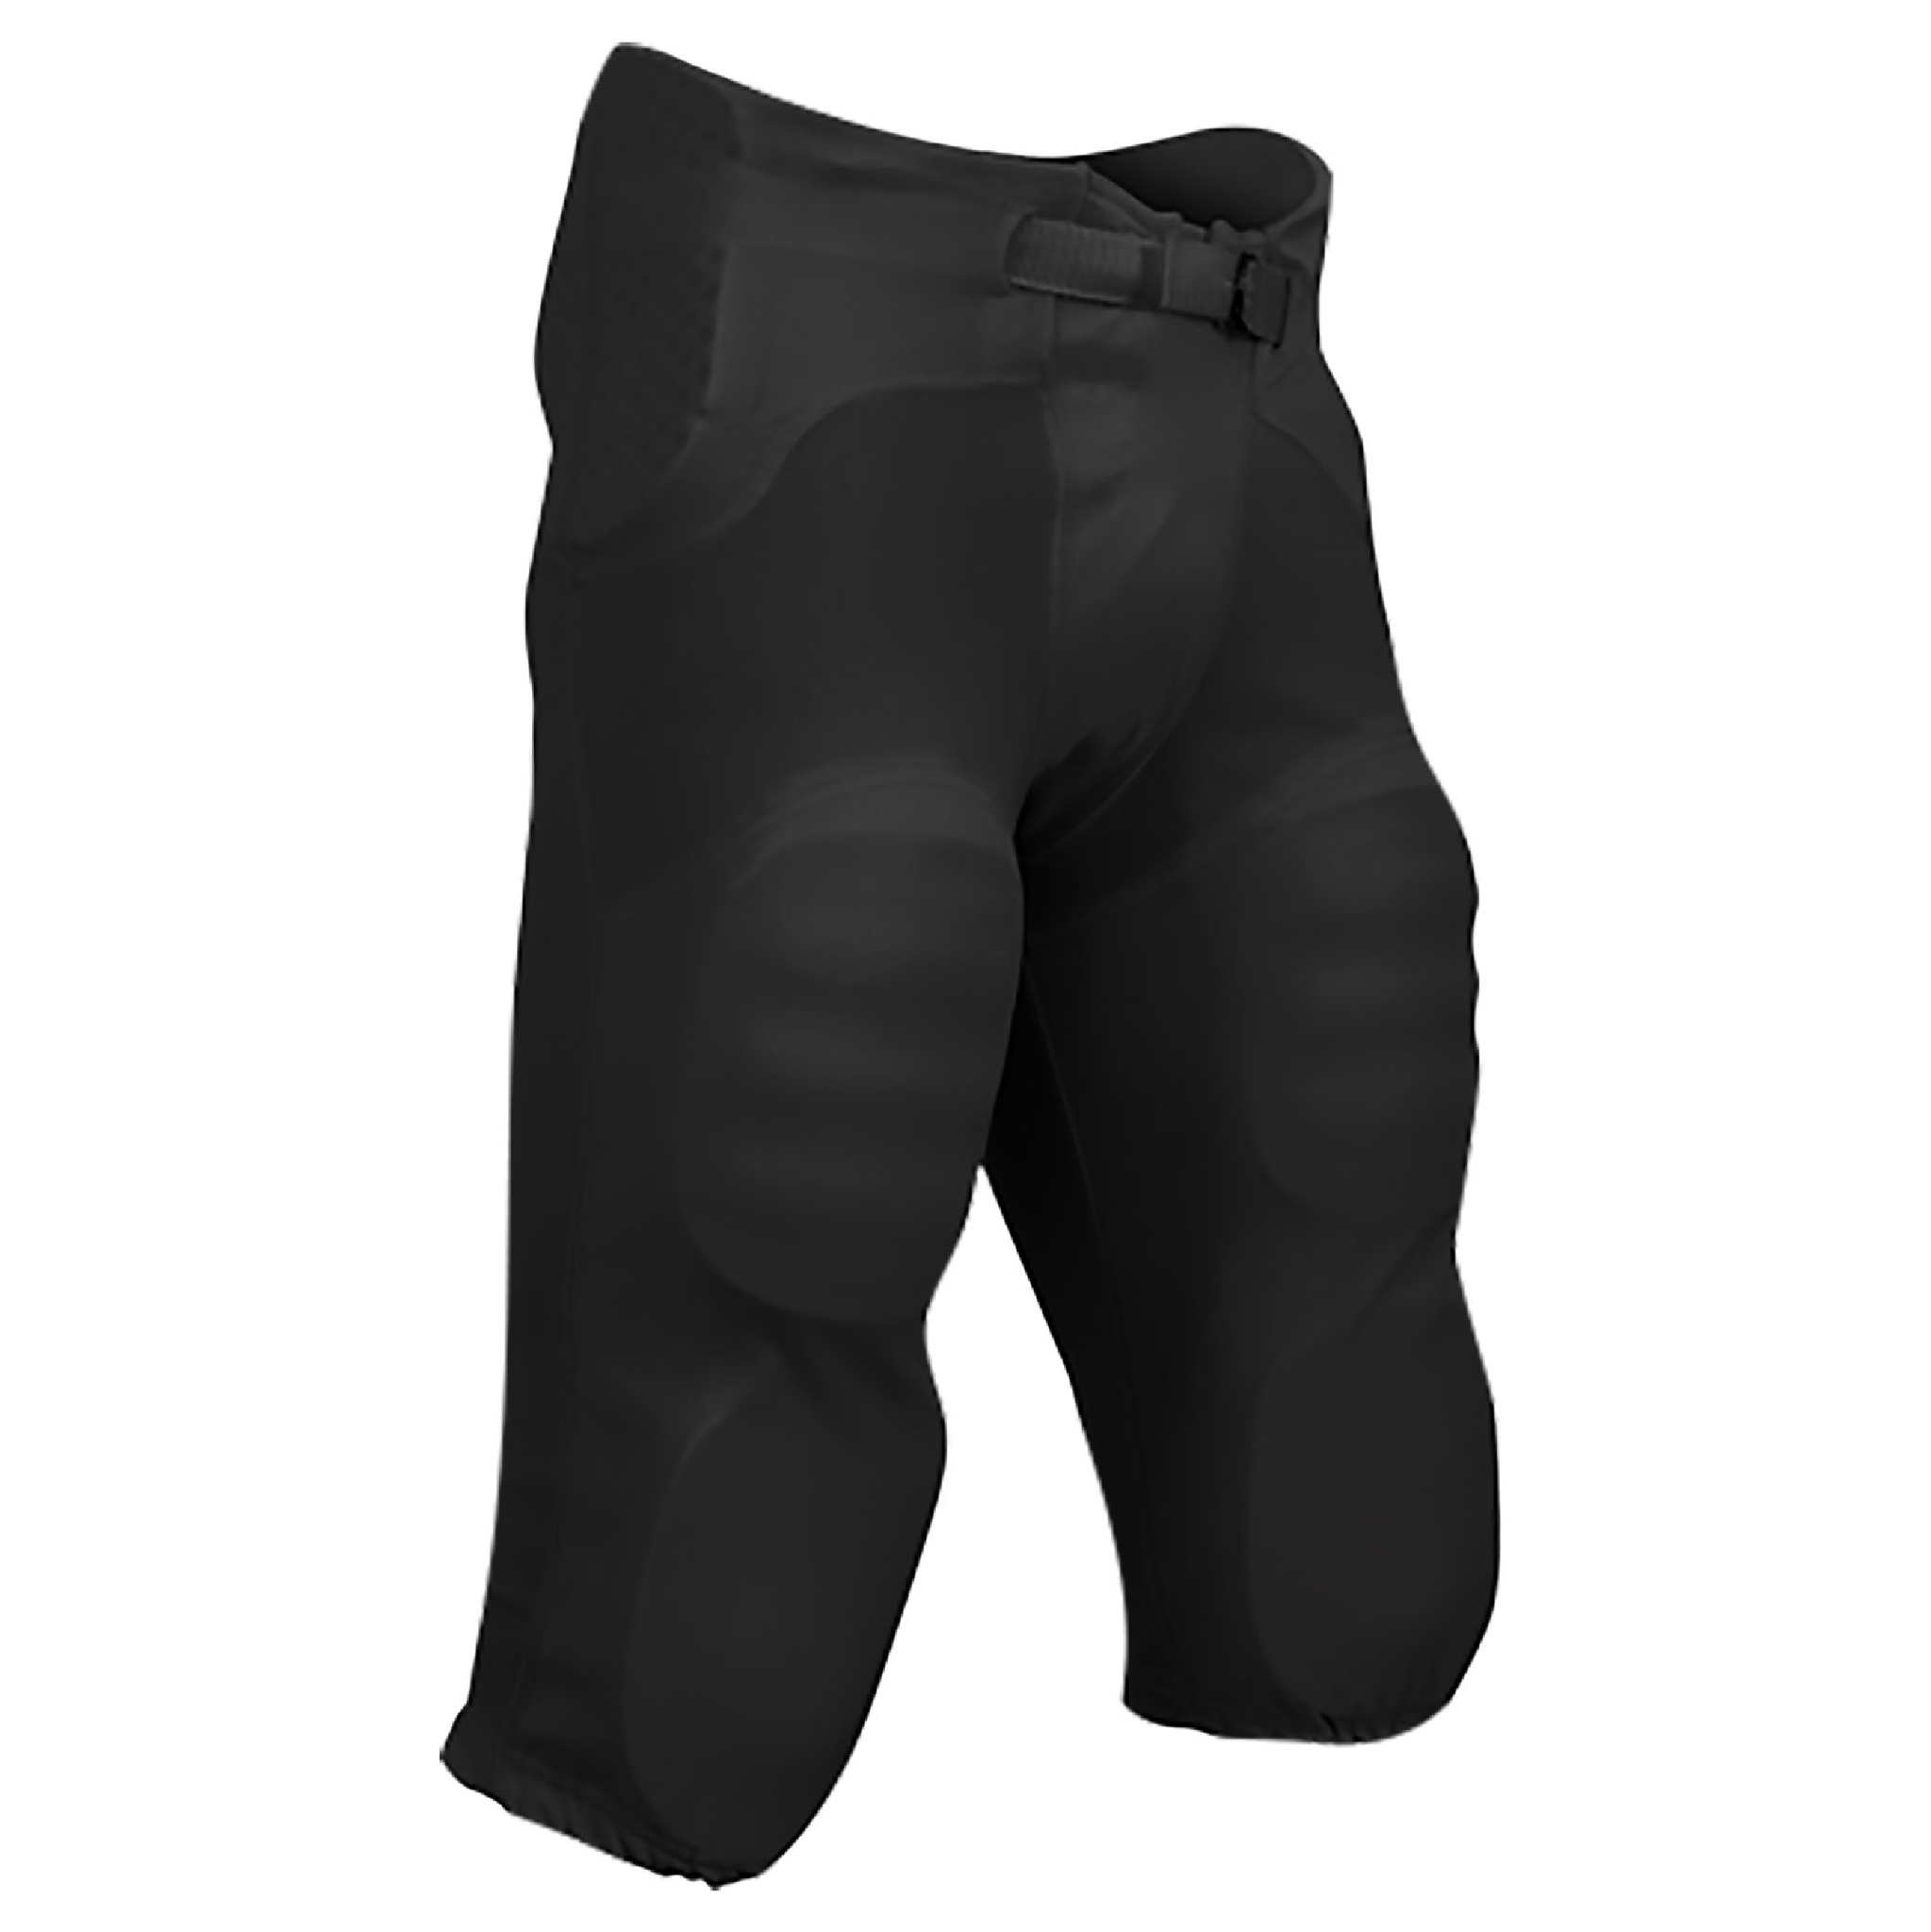 Champro Safety Integrated Practice Pant